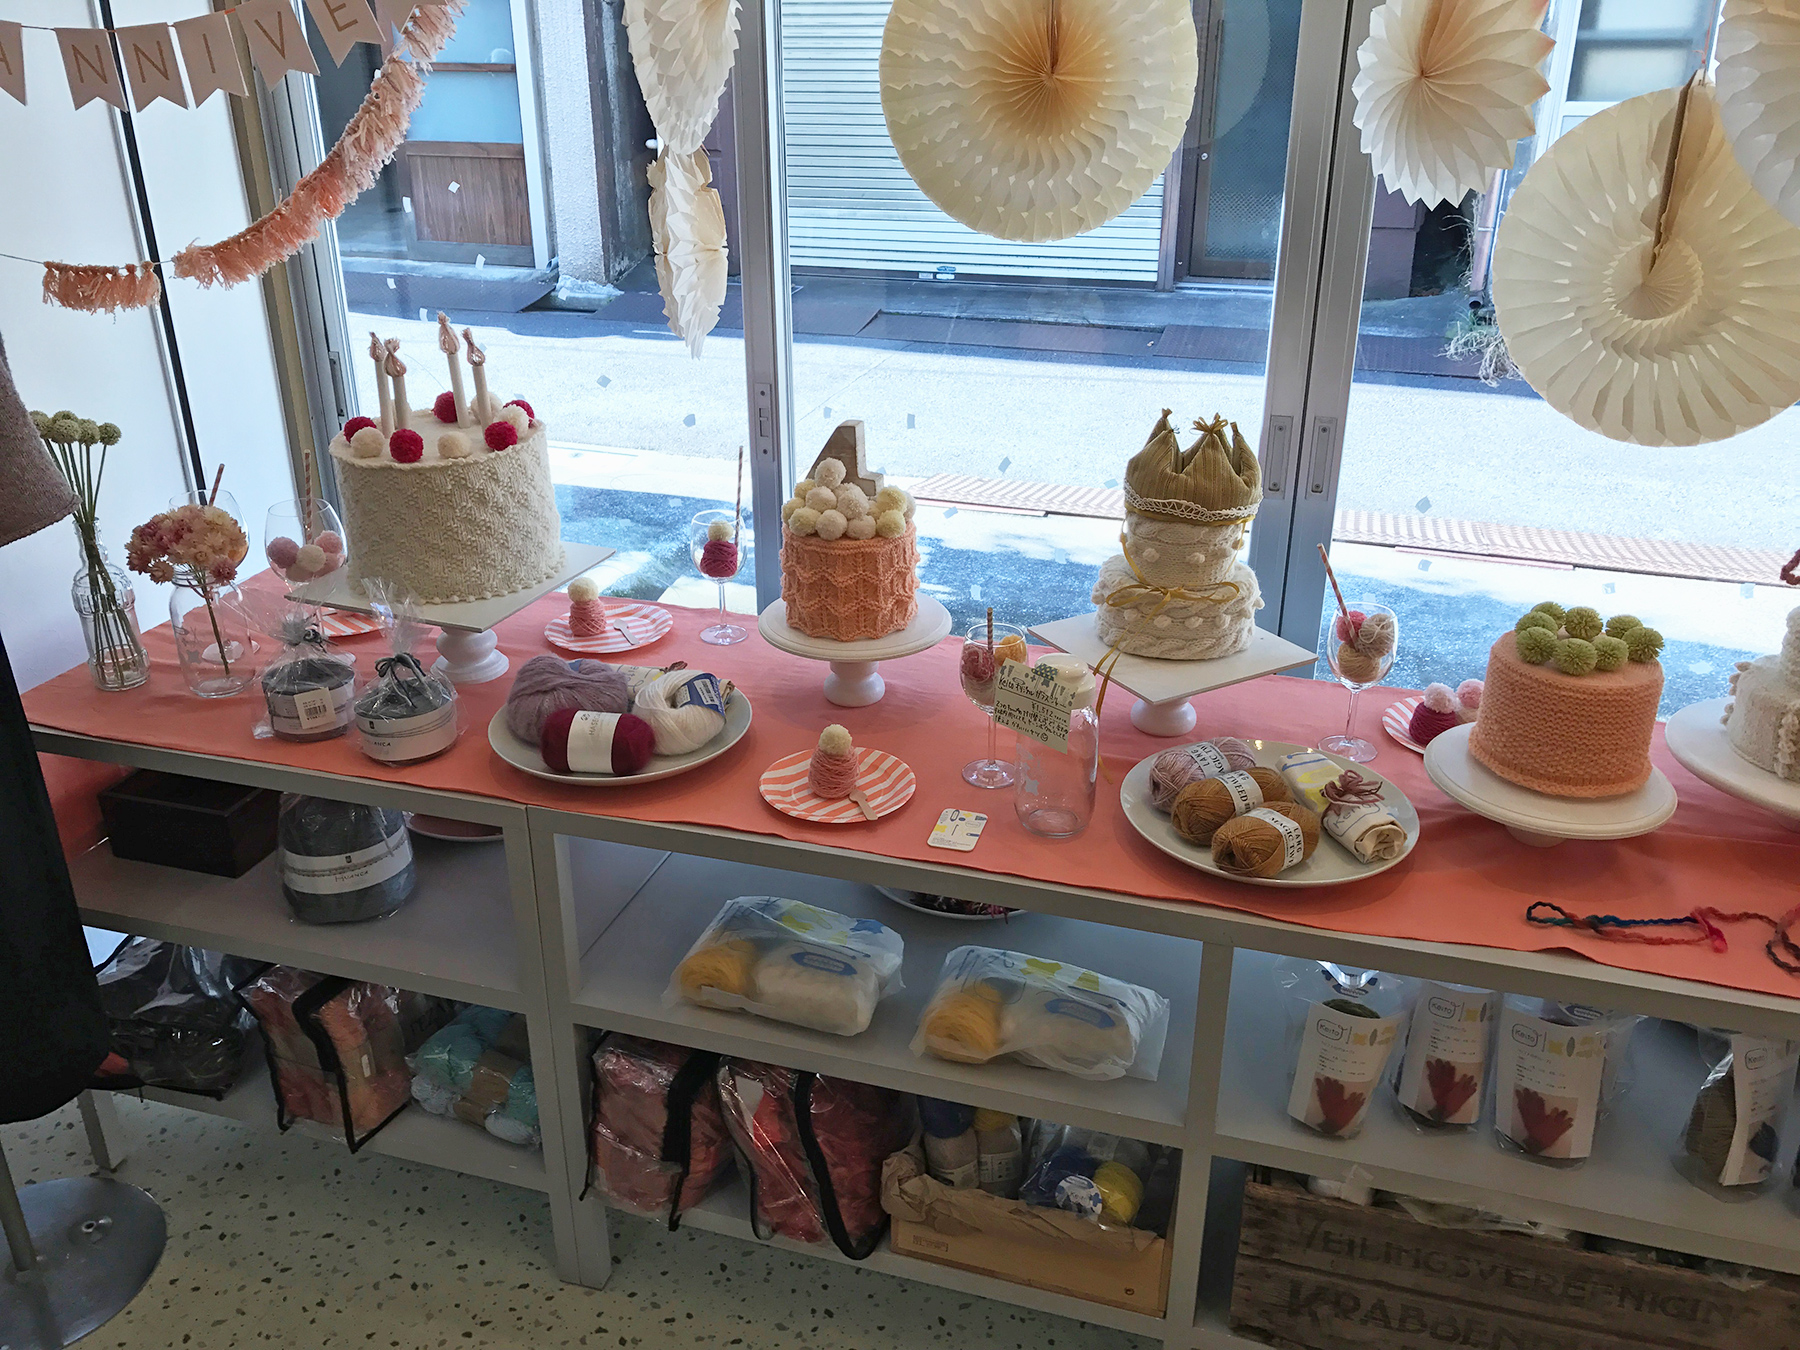 Keito's window display. Beautiful knitted cakes! (Some crocheted perhaps, too.)